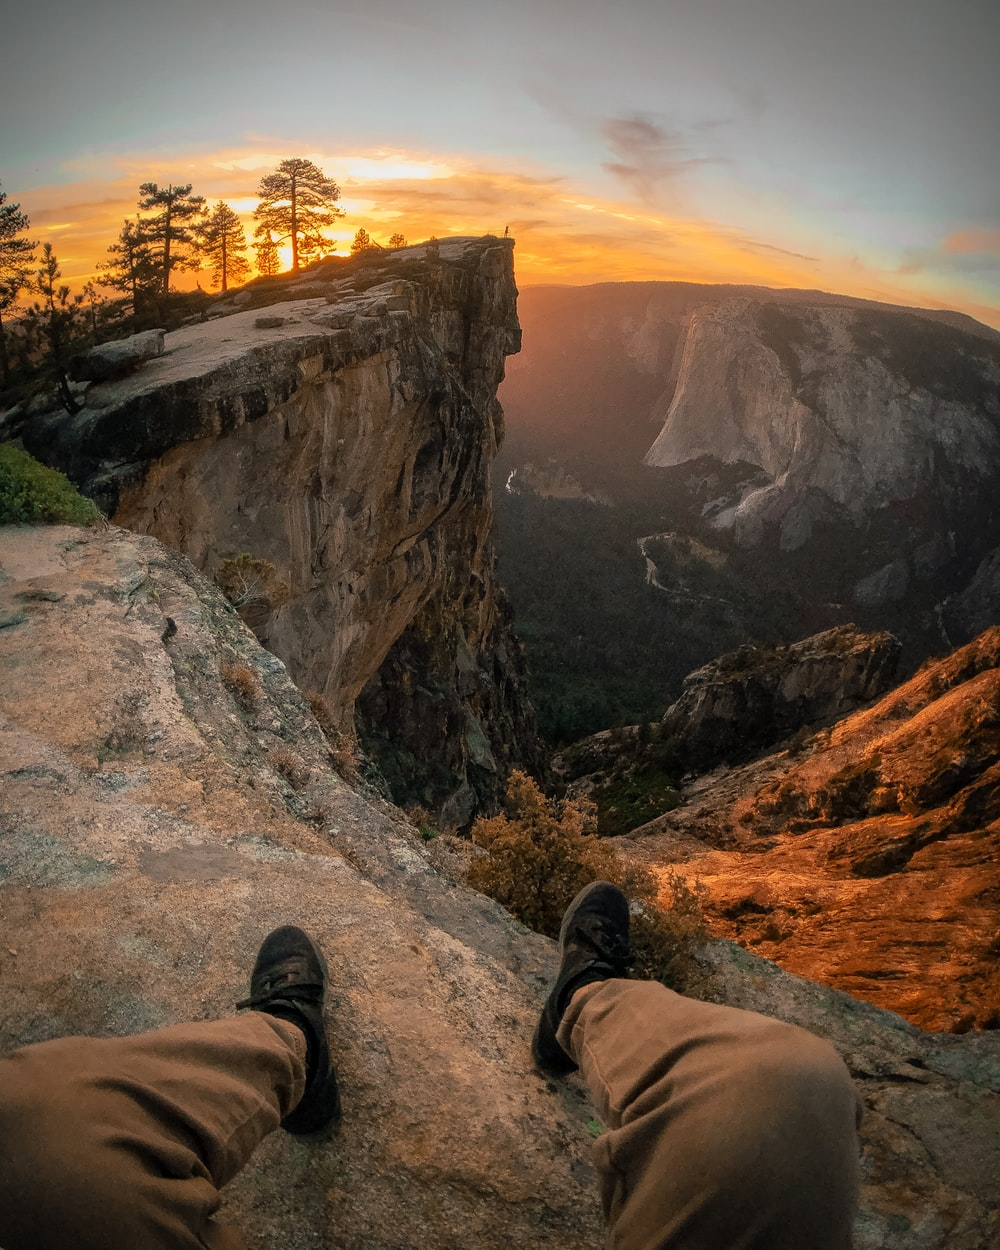 person pair of shoes and sitting on edge of mountain